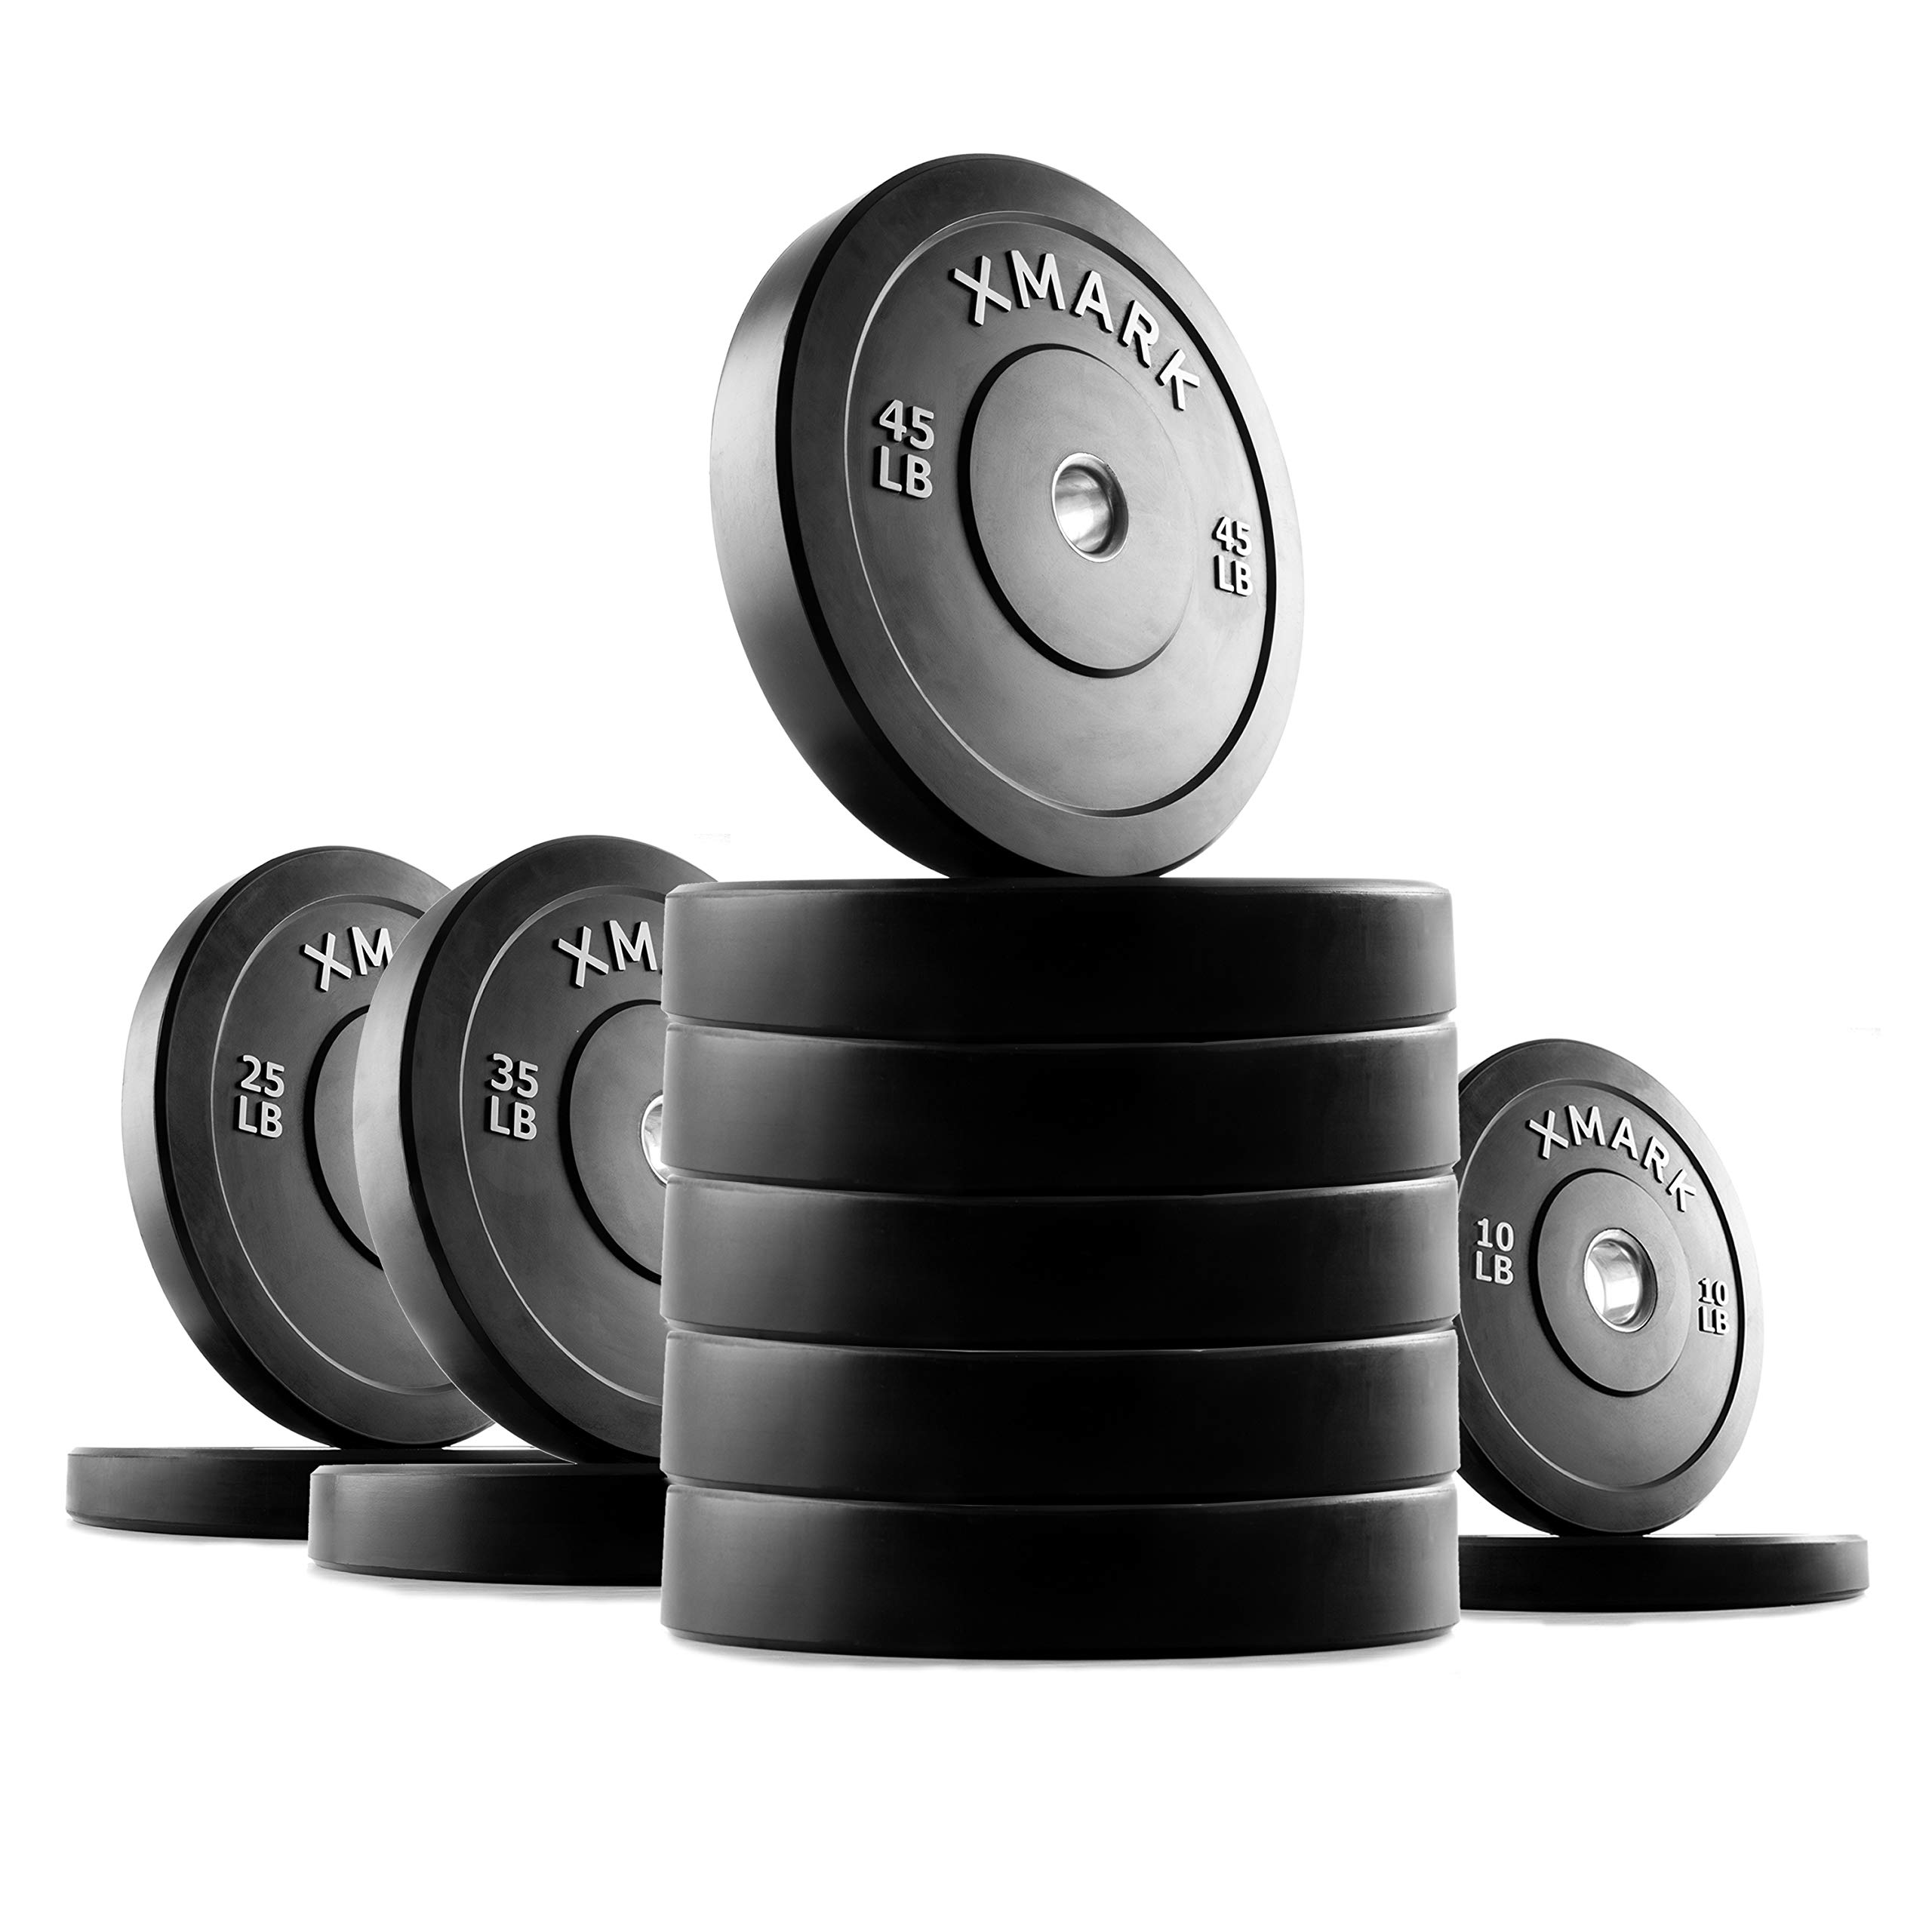 XMark 410 lb Set Premium Bumper Plates, Three-Year Warranty, Low Bounce Olympic Bumper Weight Plates, XM-3385 by XMark Fitness